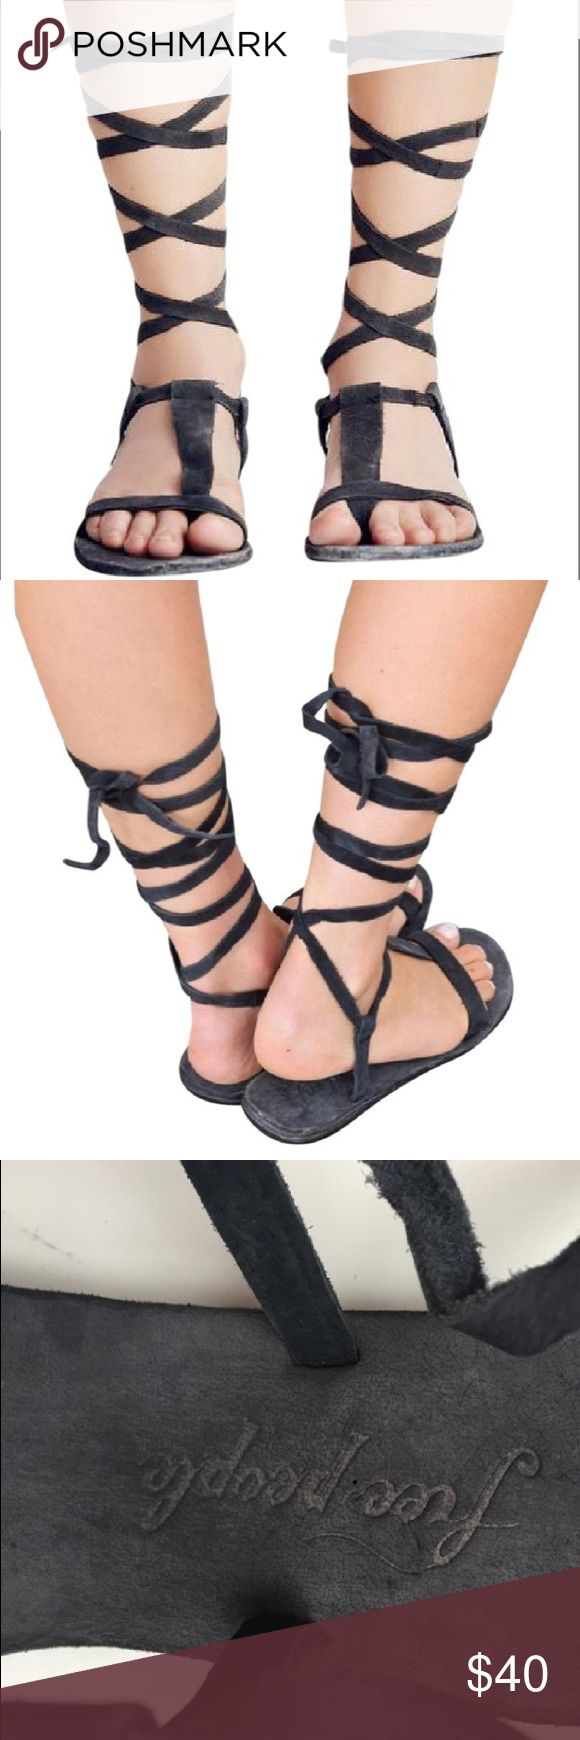 Free People Dahlia Lace Up Sandal Washed Black 5 These beautiful sandals scream BoHo! They would be perfect for festivals or your beach vacation or anytime you just want to add some flair to your outfit.  They are washed black in color, which almost has a navy or blue cast to the color.  They are rustic and really cute!  Women's size 5. Free People Shoes Sandals